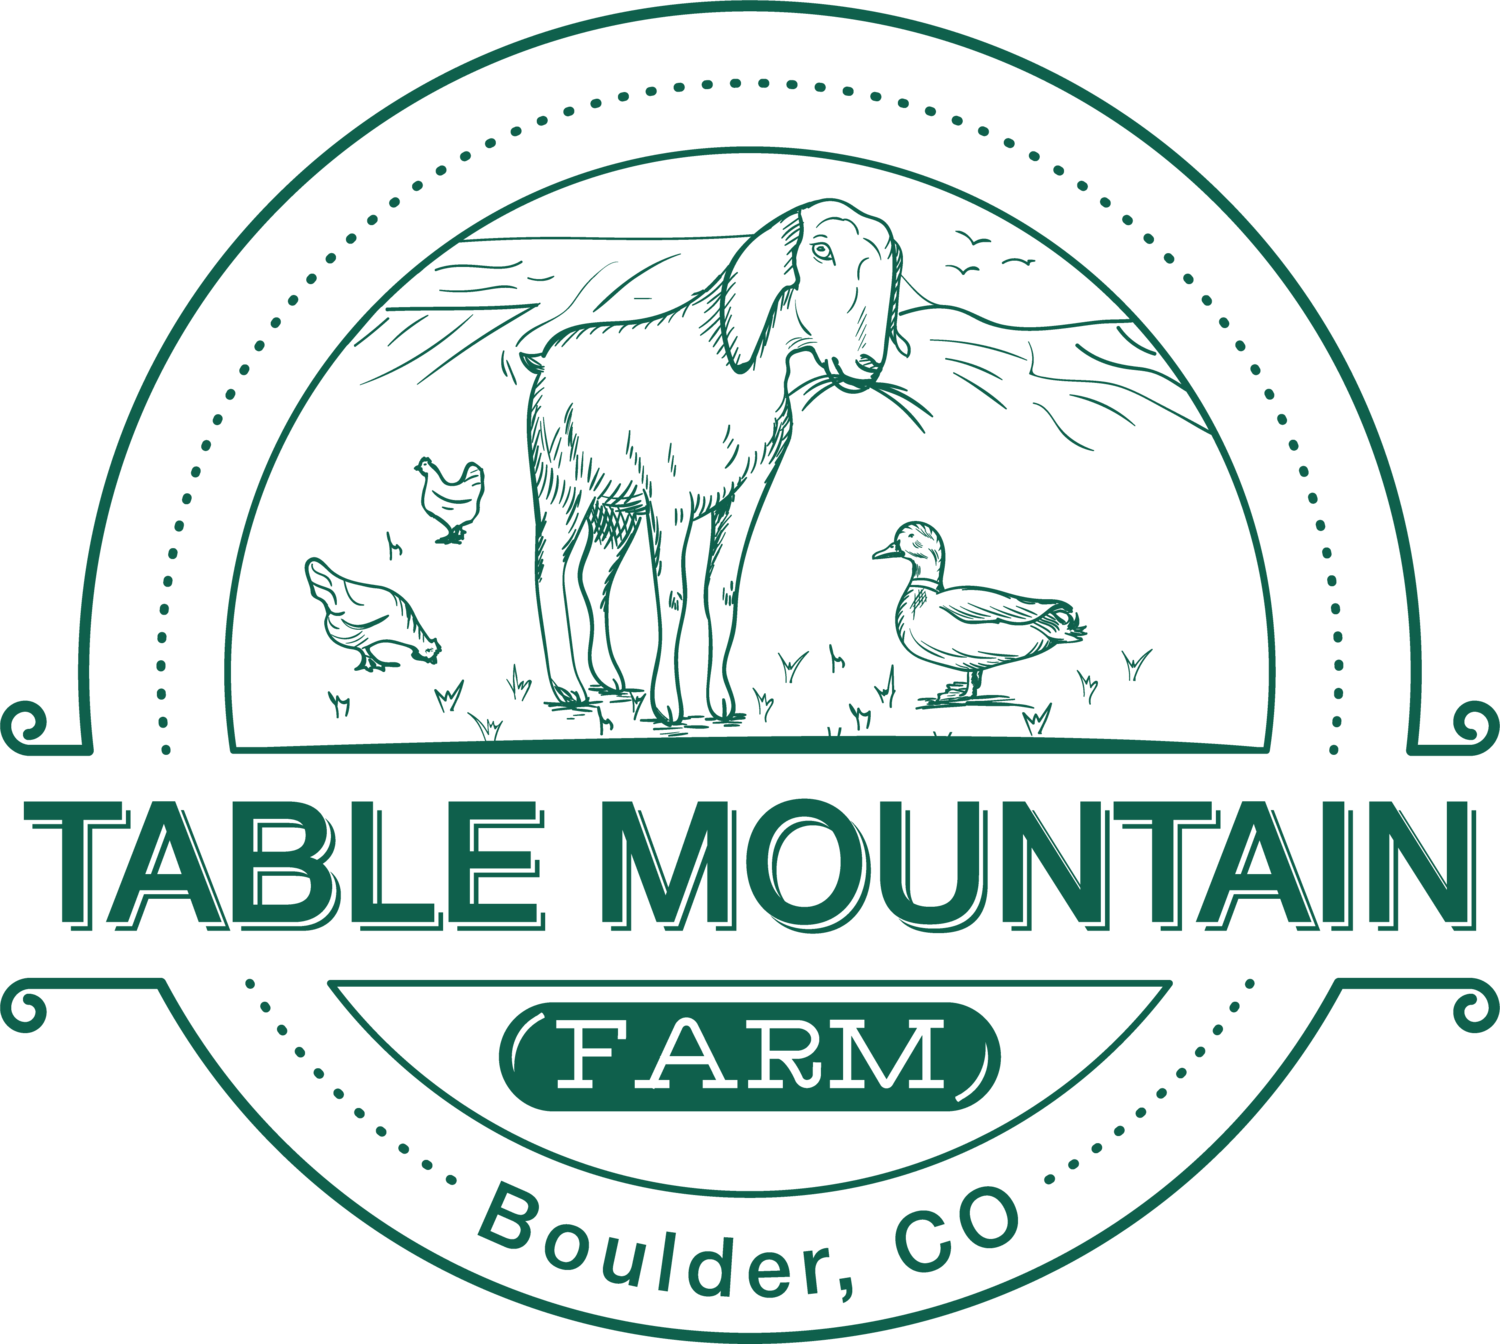 Table Mountain Farm